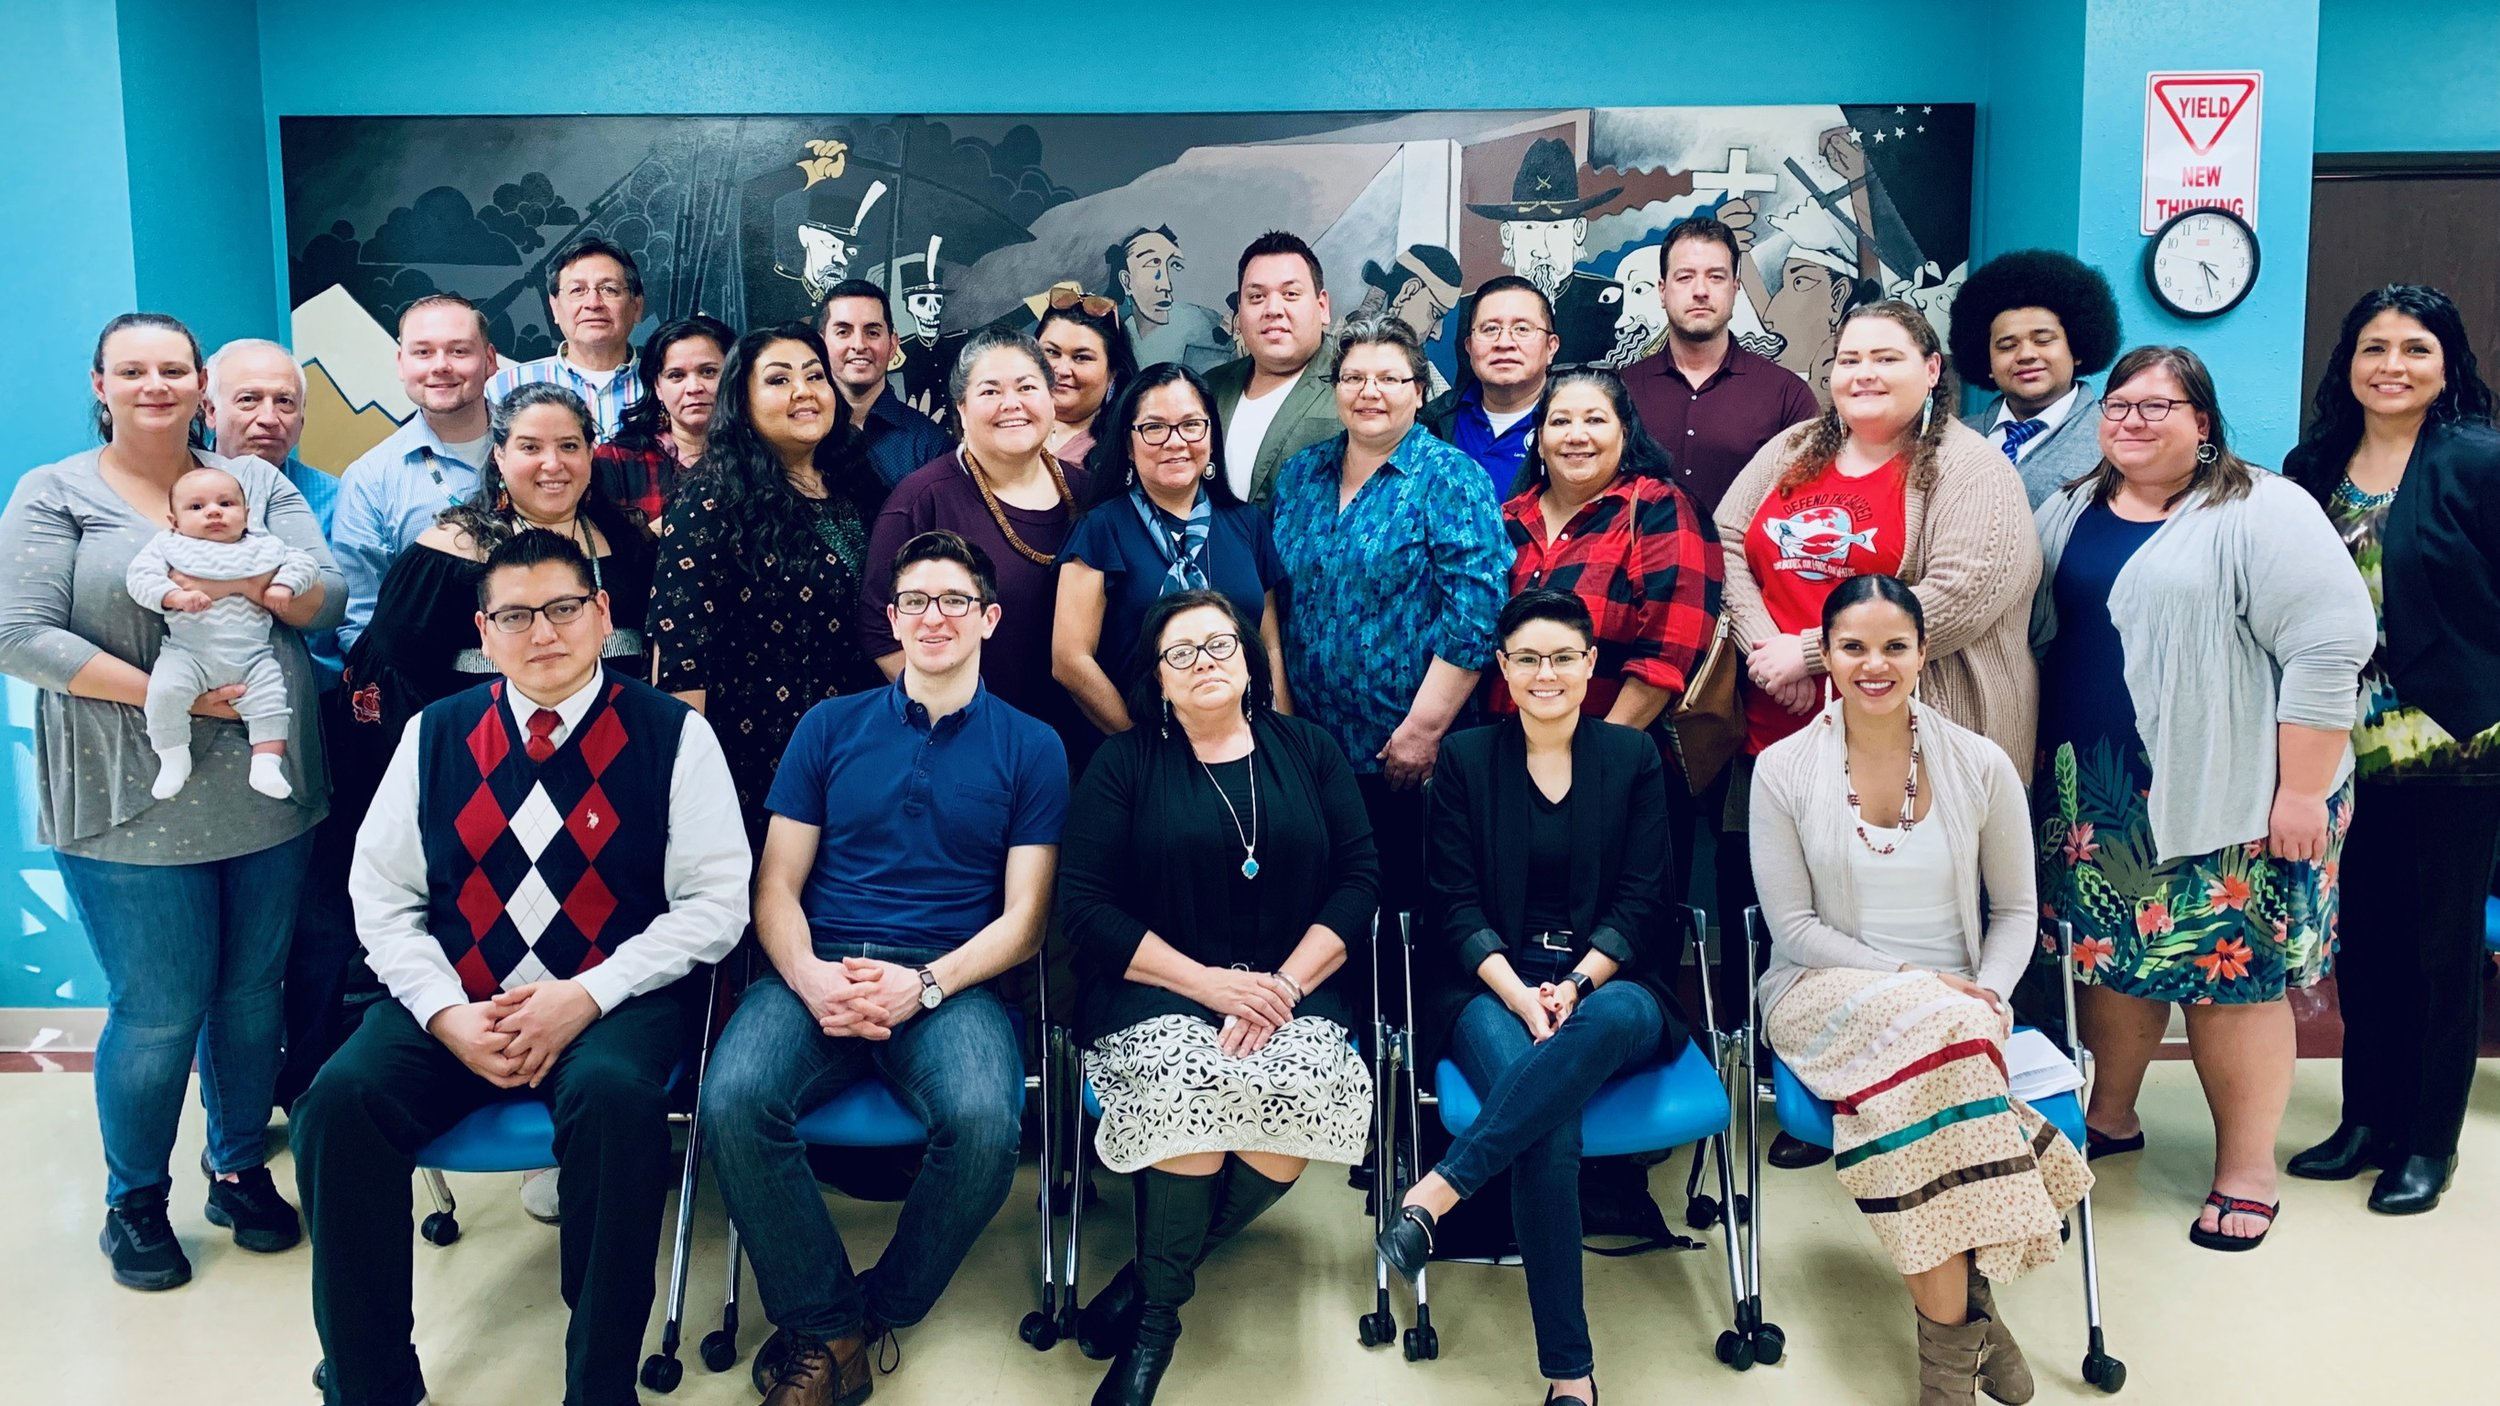 Representatives from grantee organizations convened in January to discuss the NUIFC Native Vote Initiative